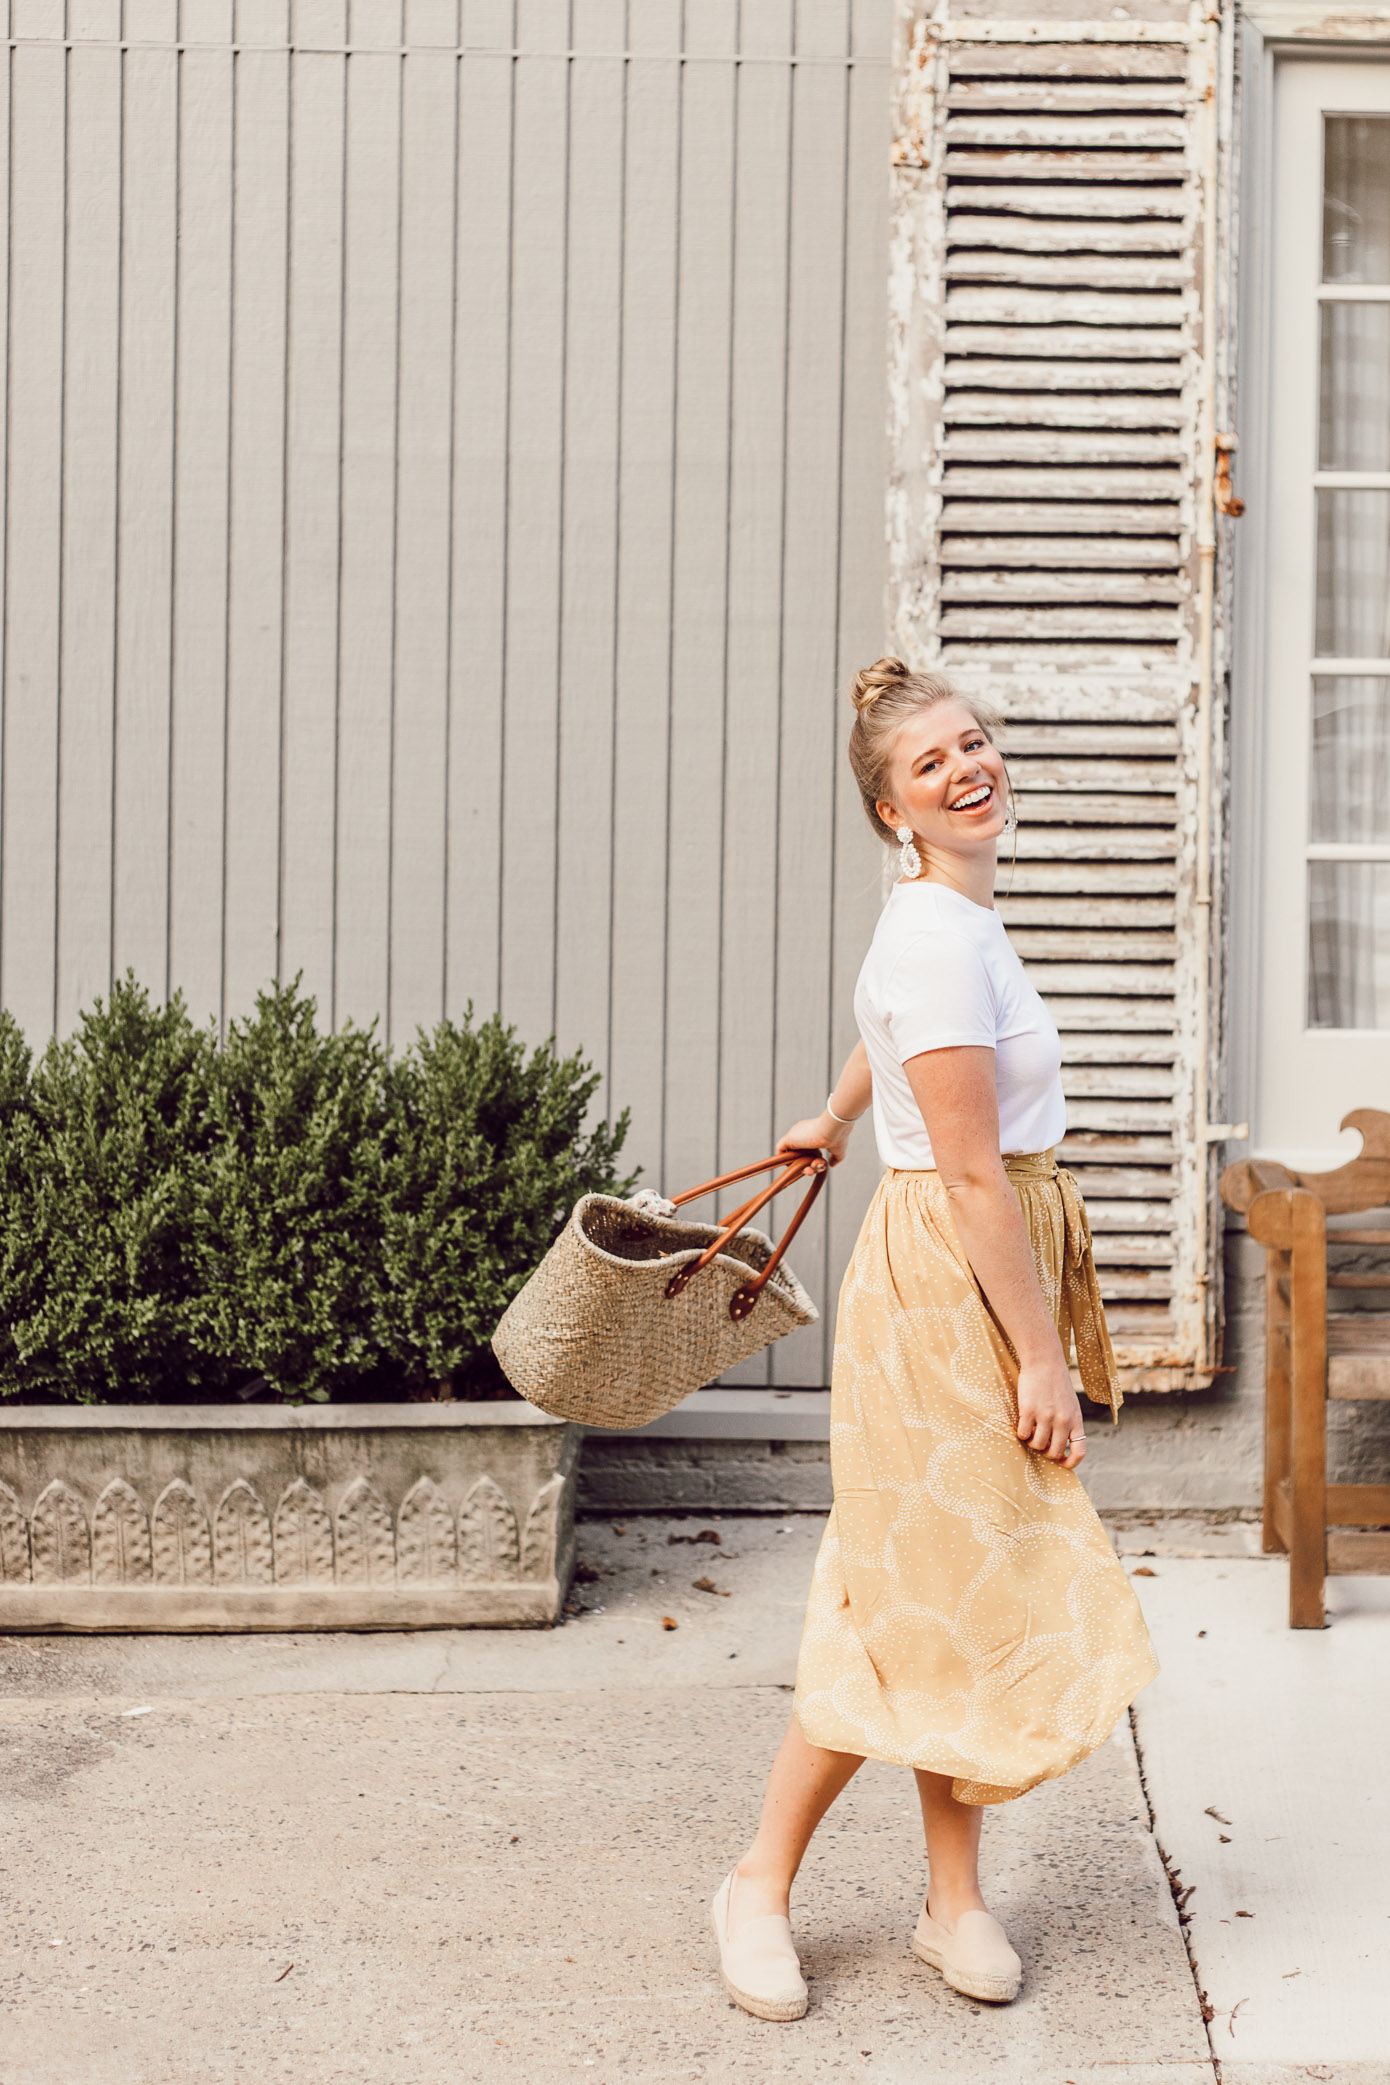 Step Out of Your Color Comfort Zone | Basic White Tee and Yellow Midi Skirt styled on Louella Reese Life & Style Blog